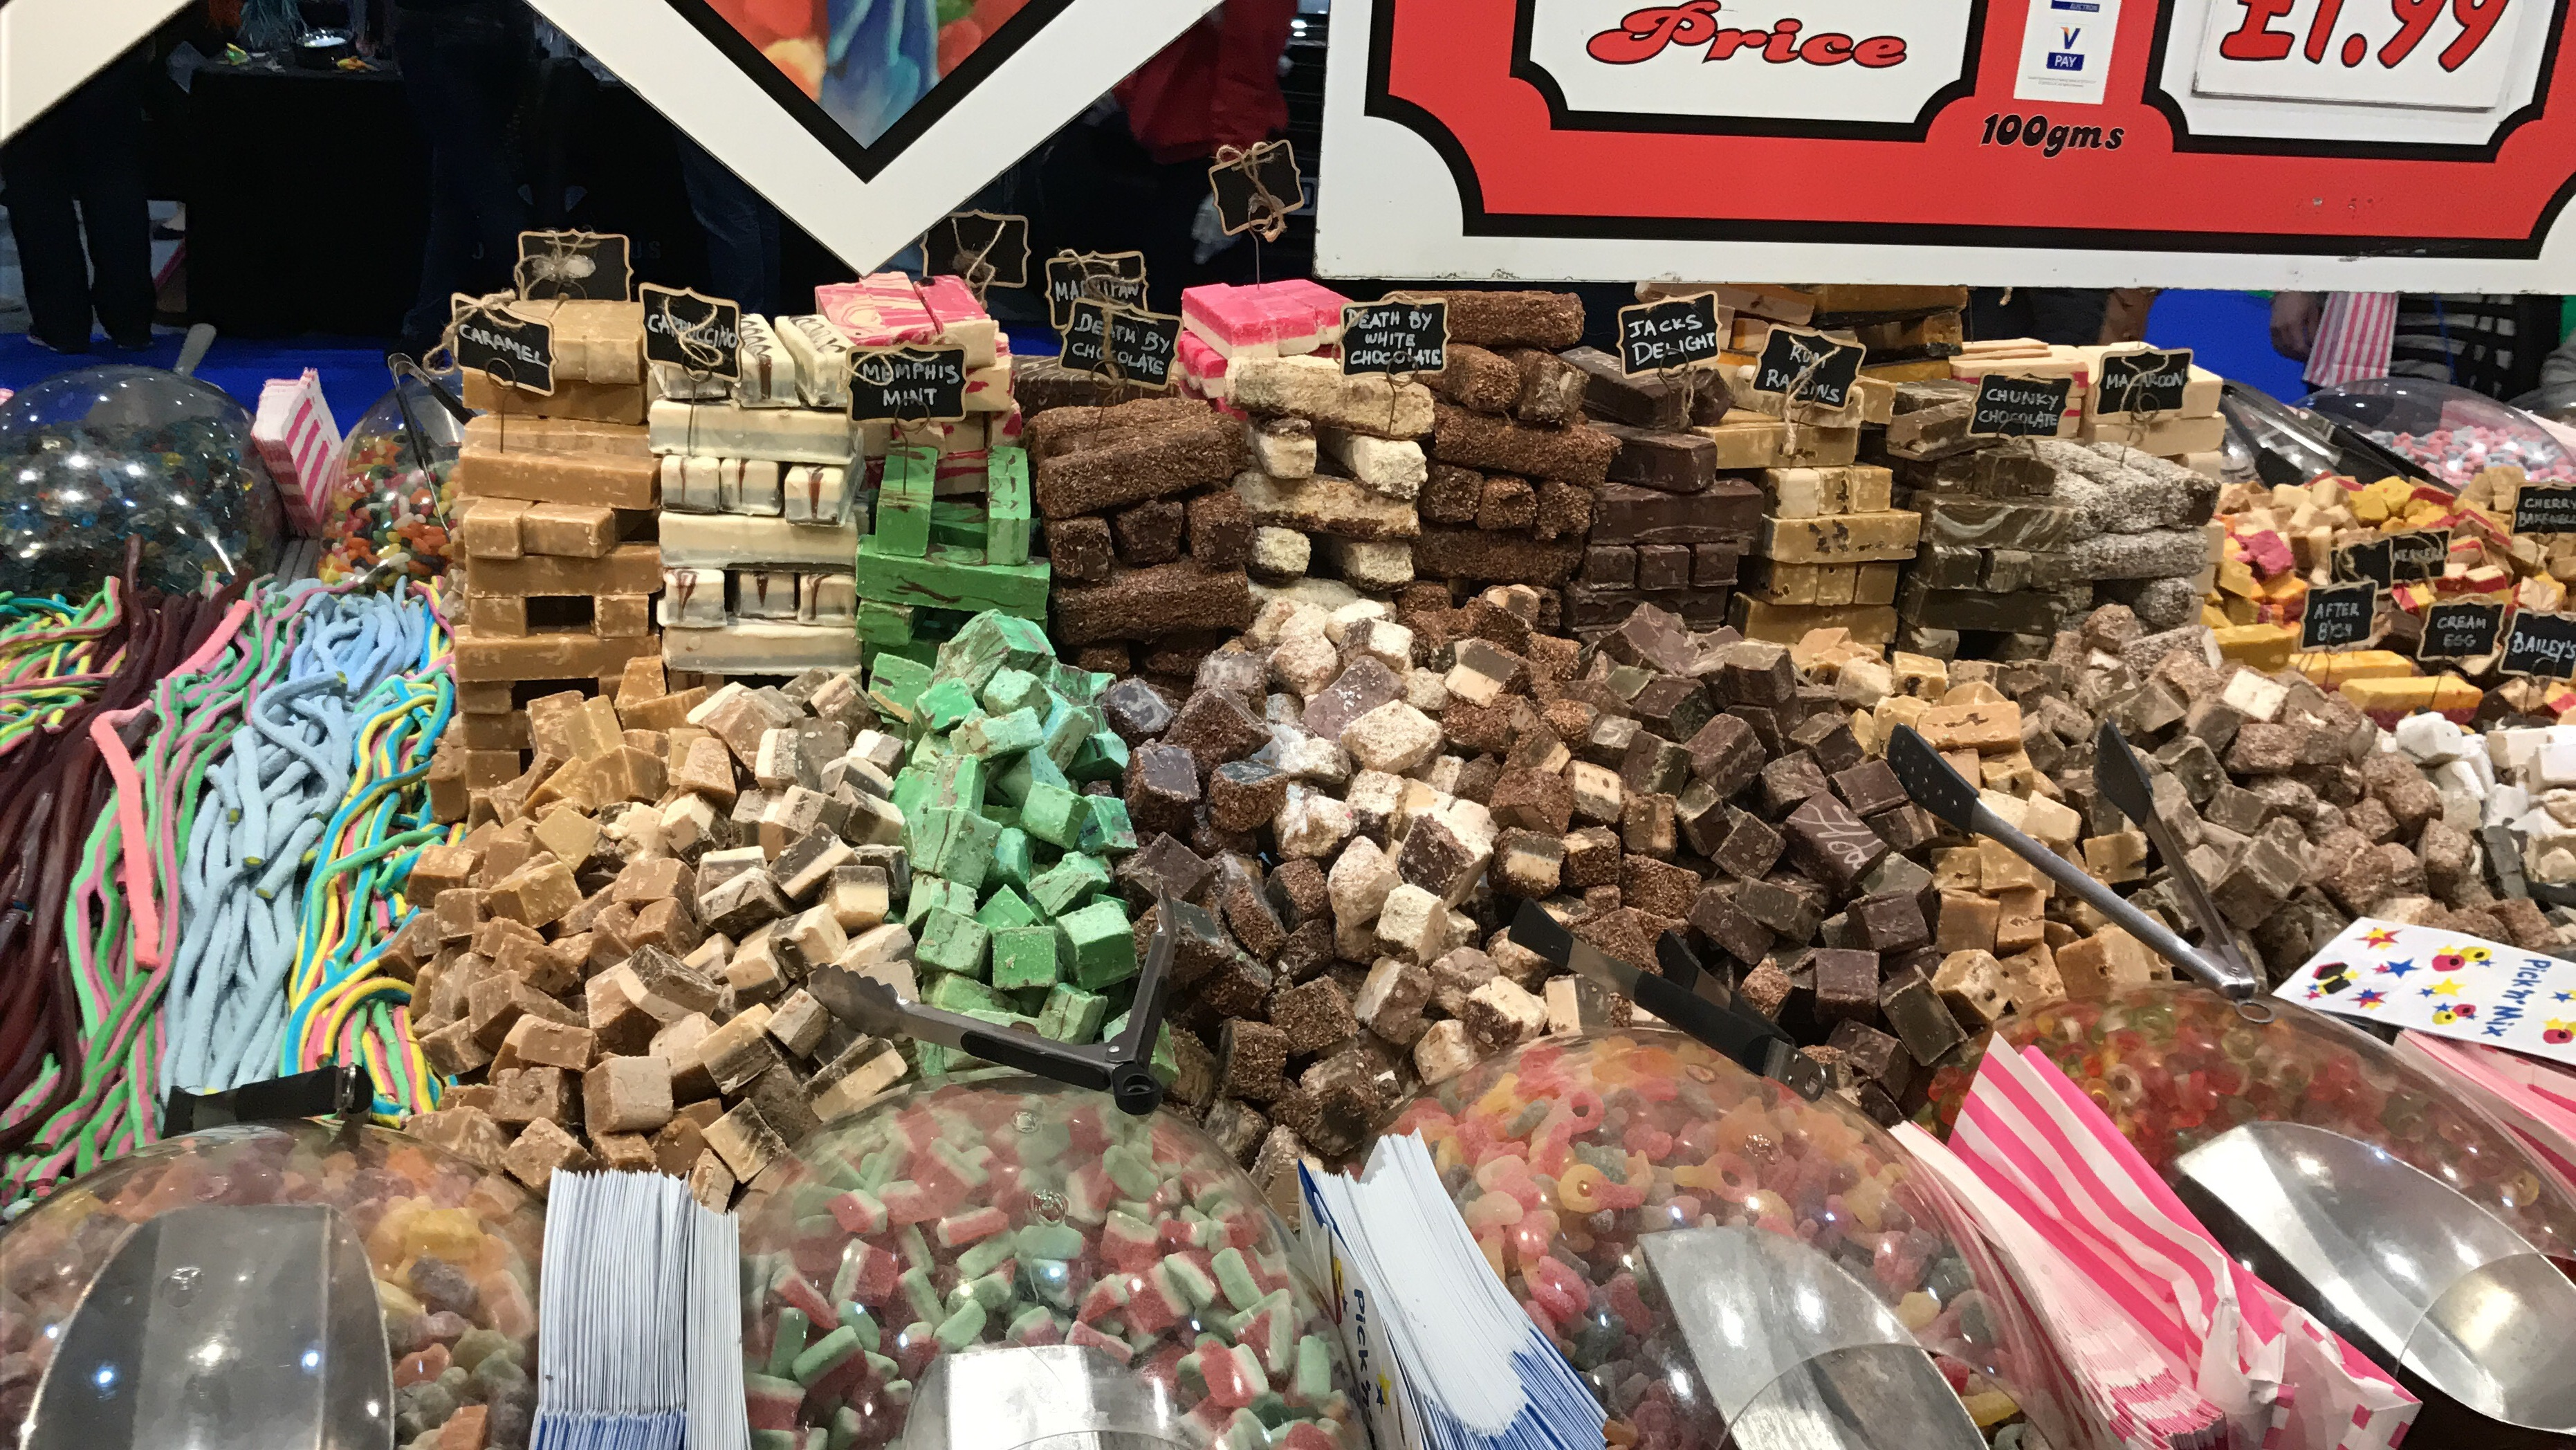 Sweet Stand - Display of fudge